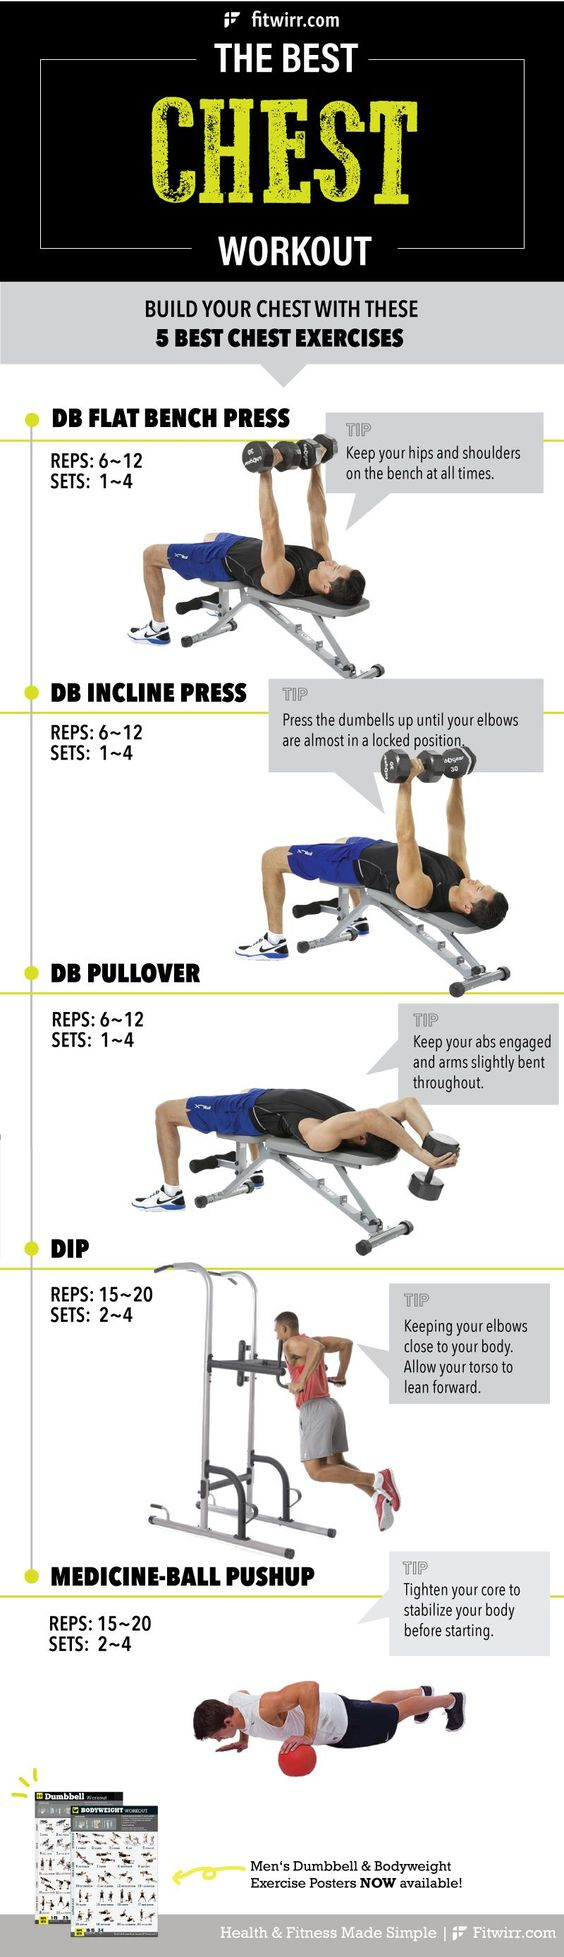 Best chest workouts for men